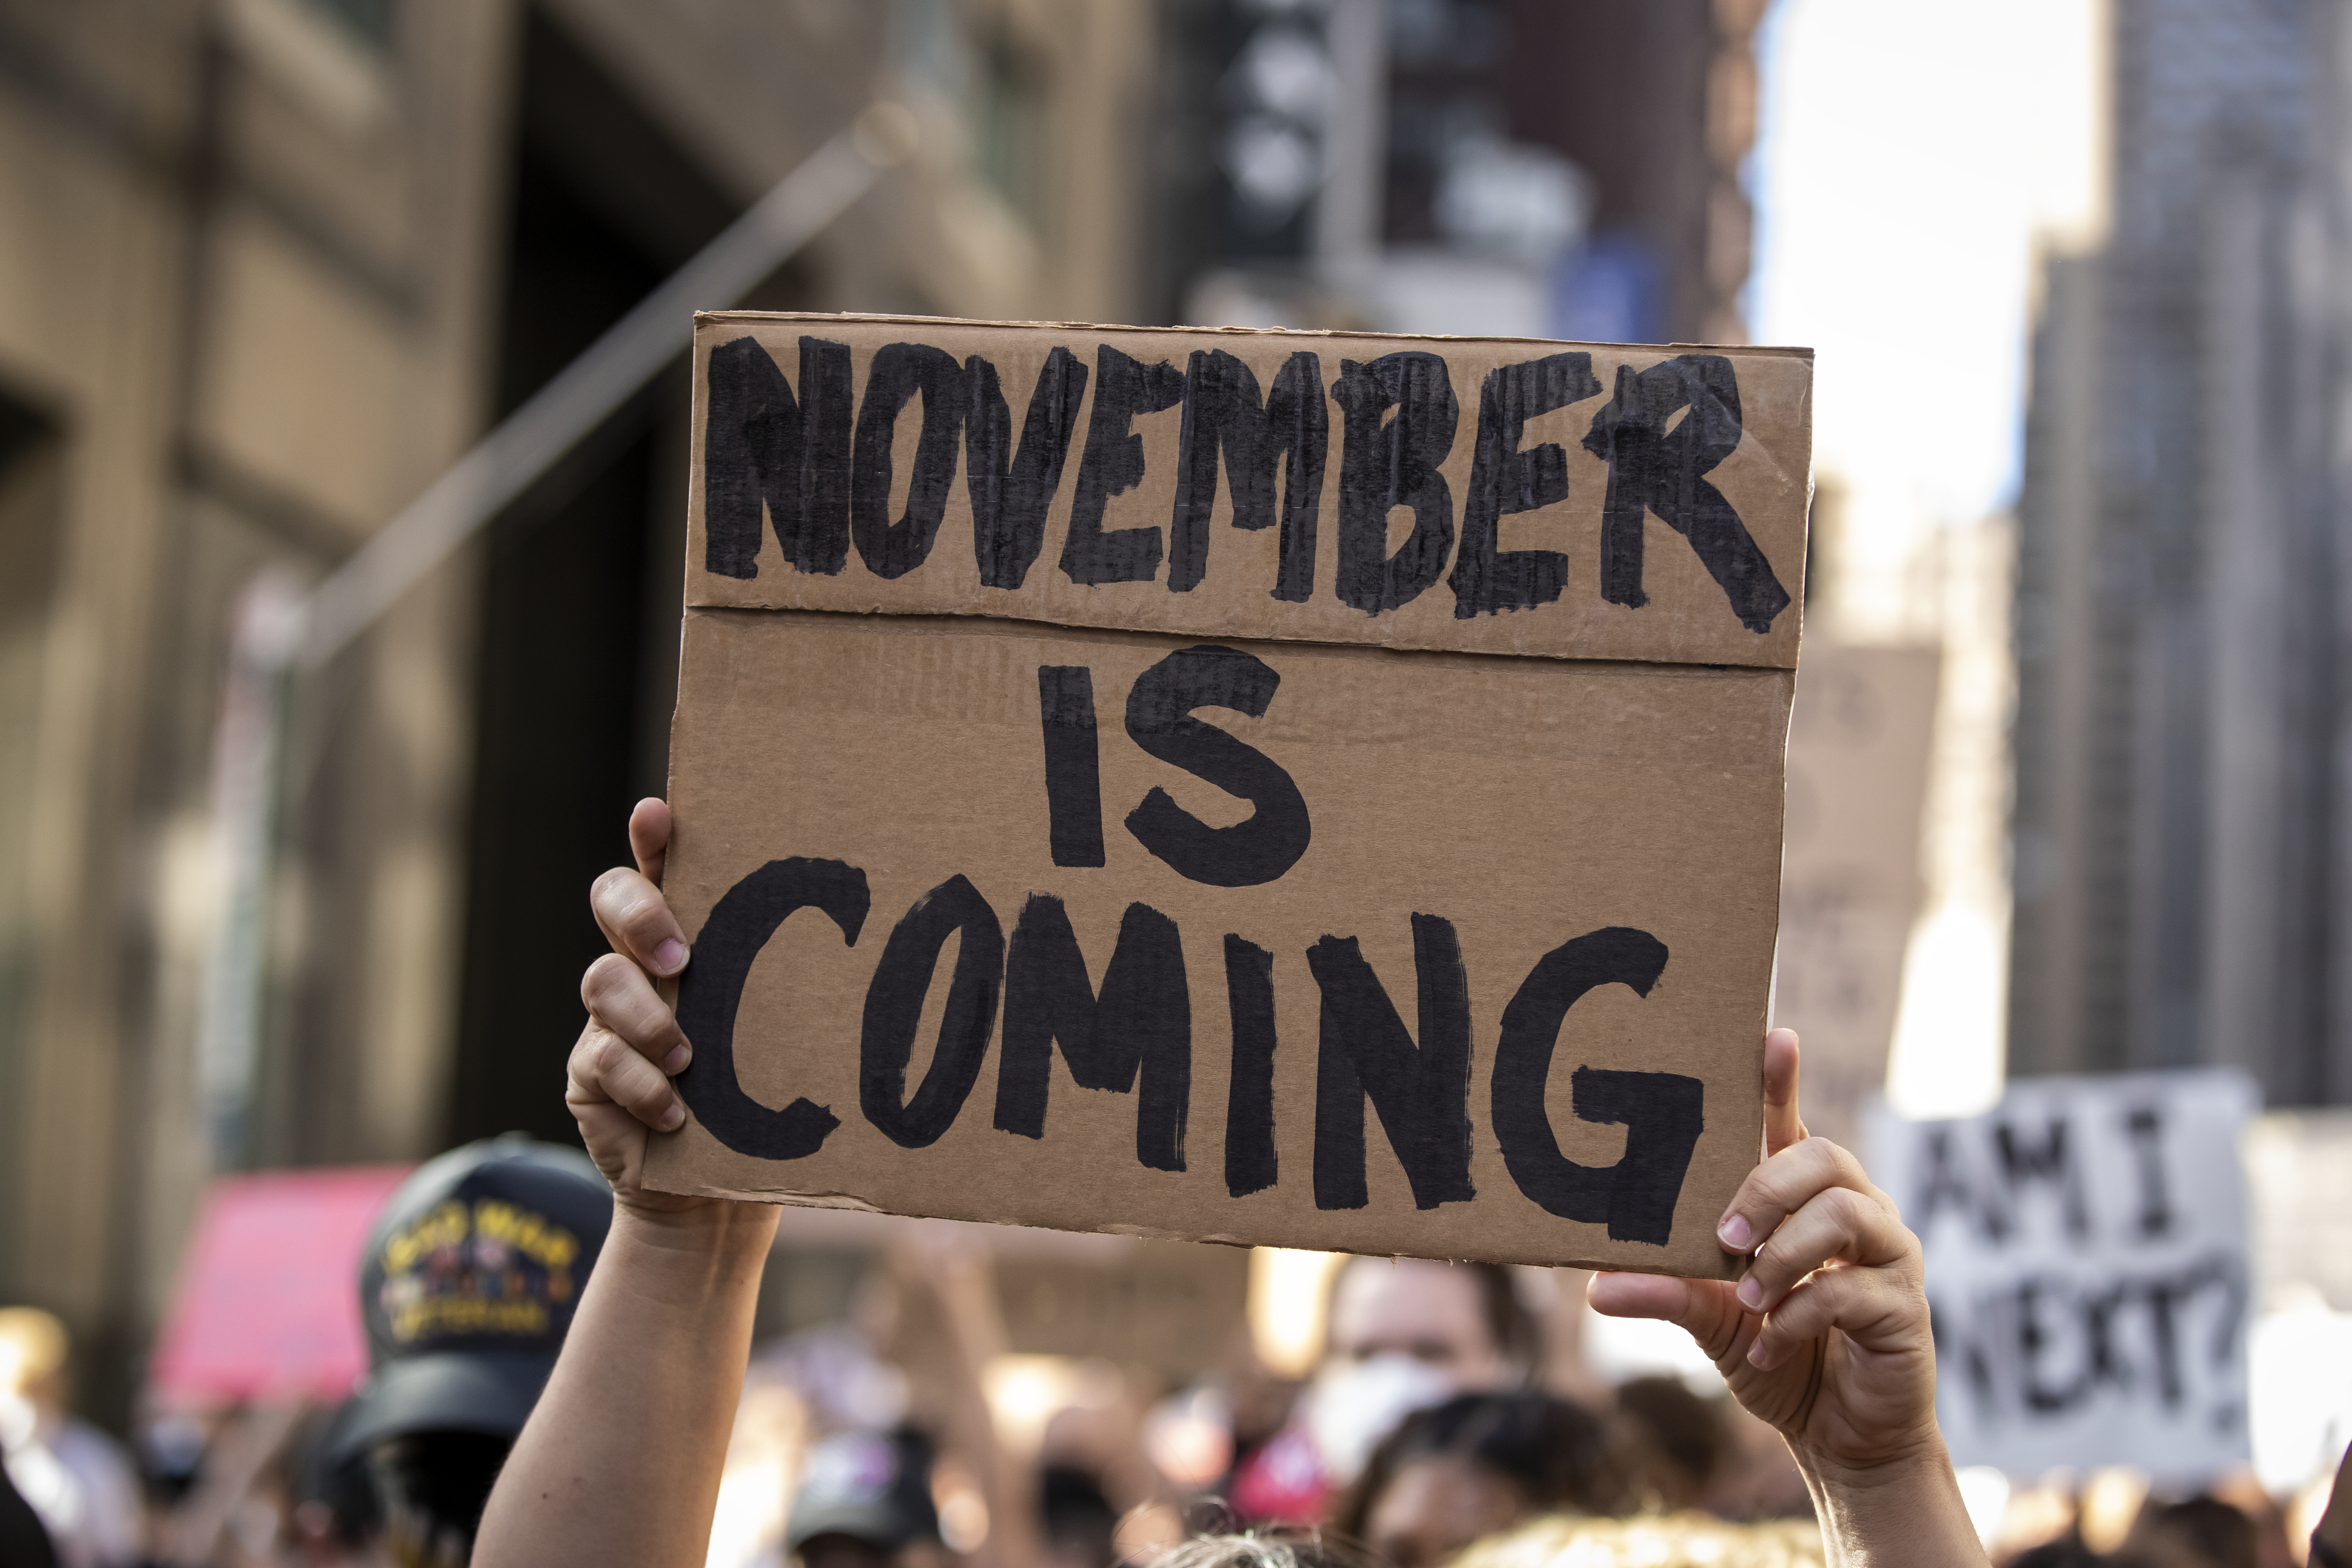 """A sign made from a cardboard box is held above a crowd. Its message, written in black in all capital letters, reads: """"NOVEMBER IS COMING."""""""